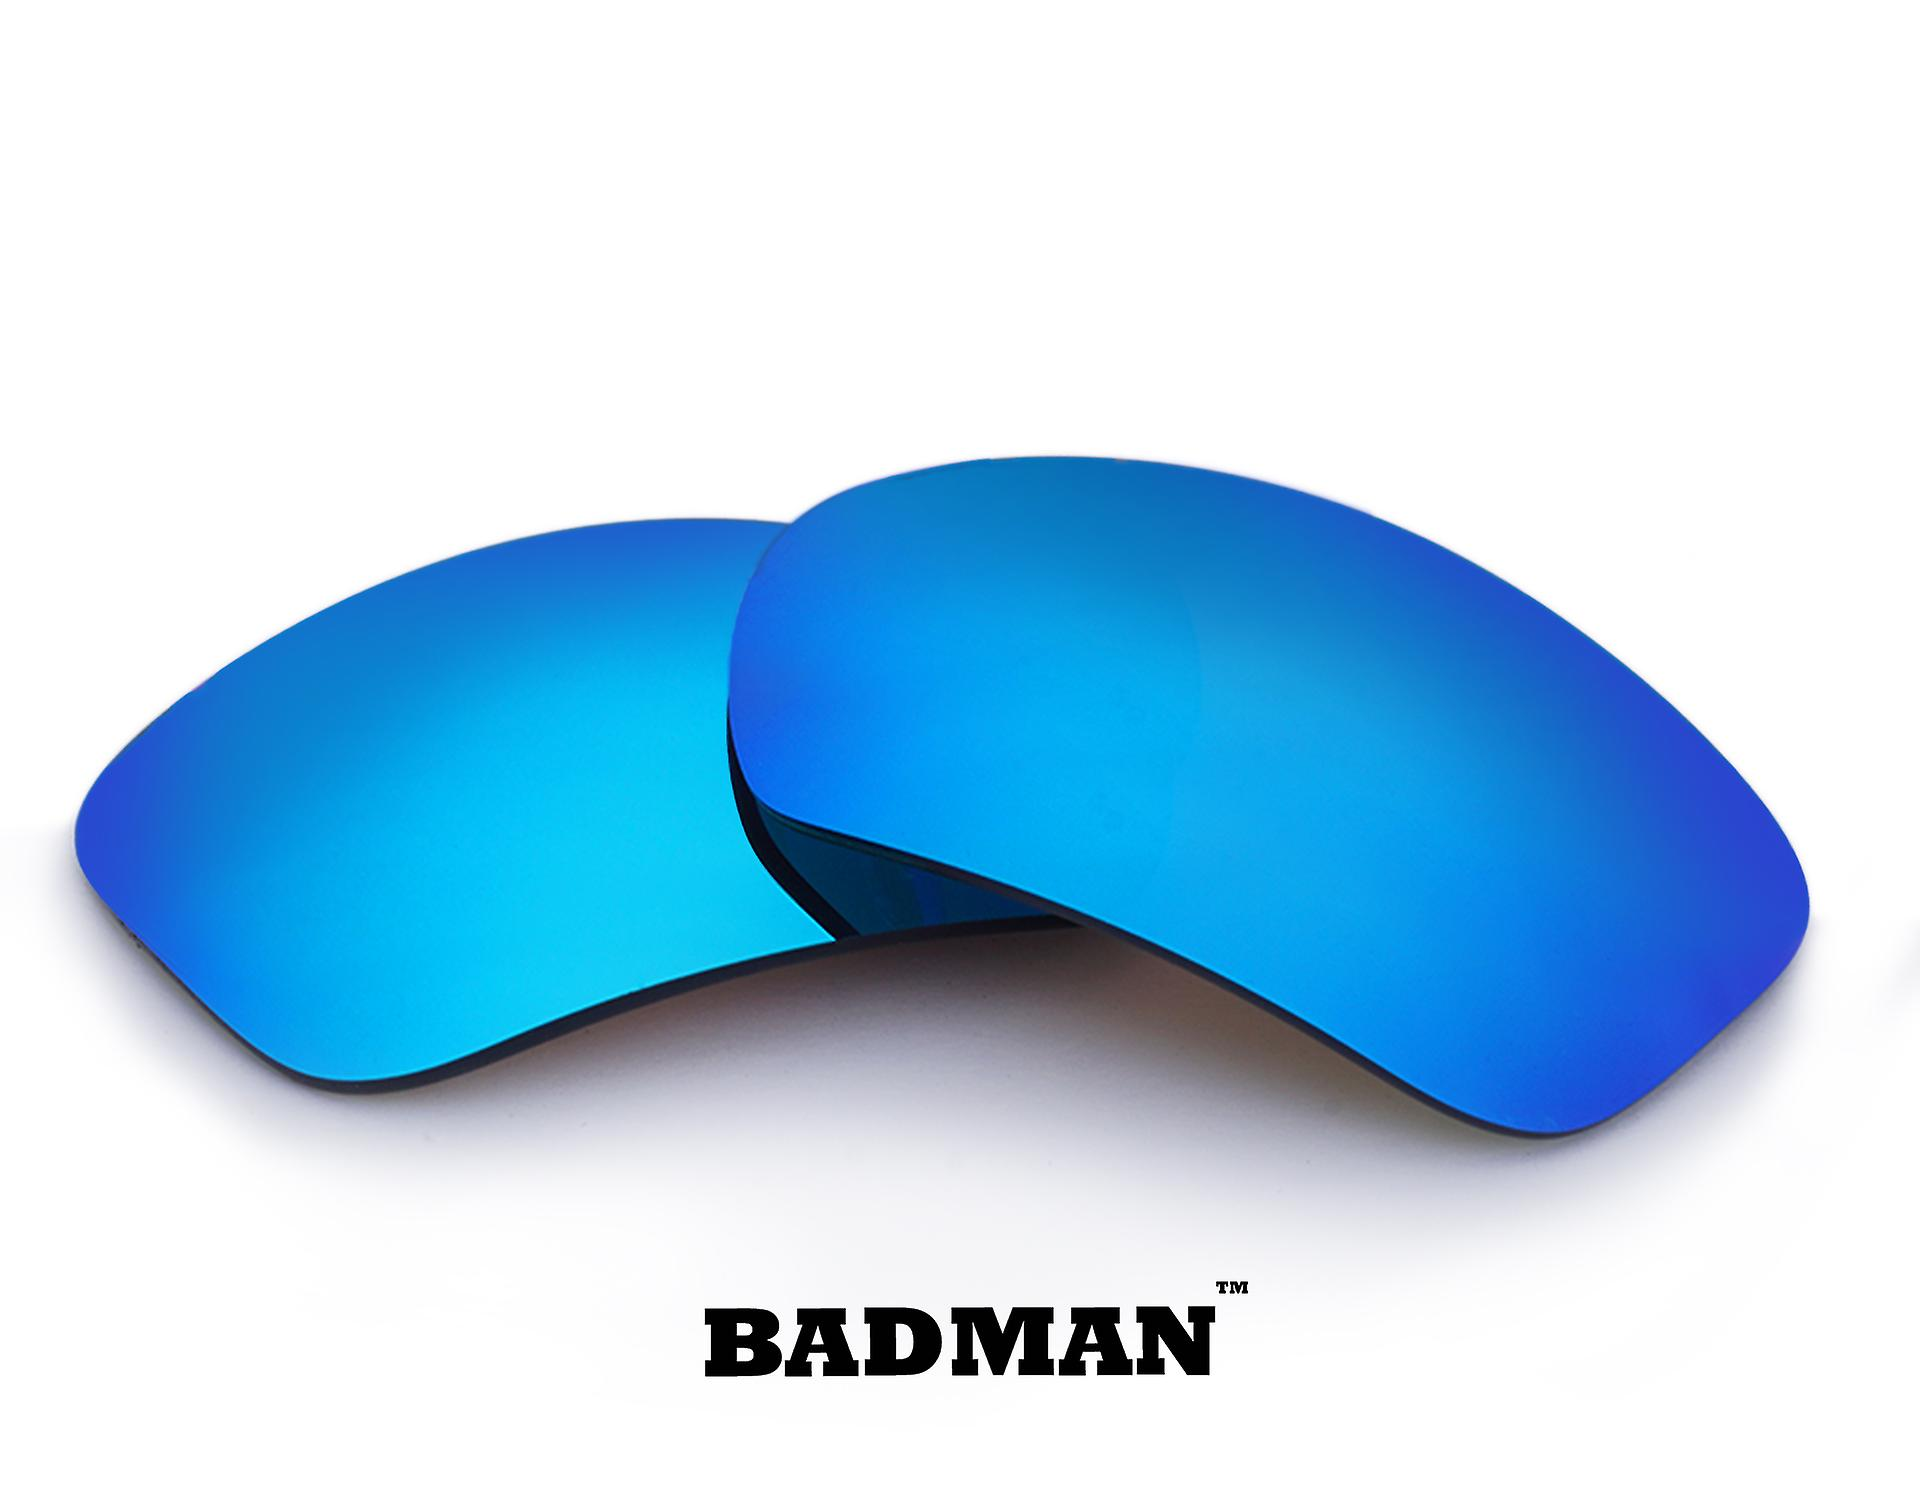 a556b881843c8 BADMAN Replacement Lenses Polarized Blue Mirror by SEEK fits OAKLEY  Sunglasses